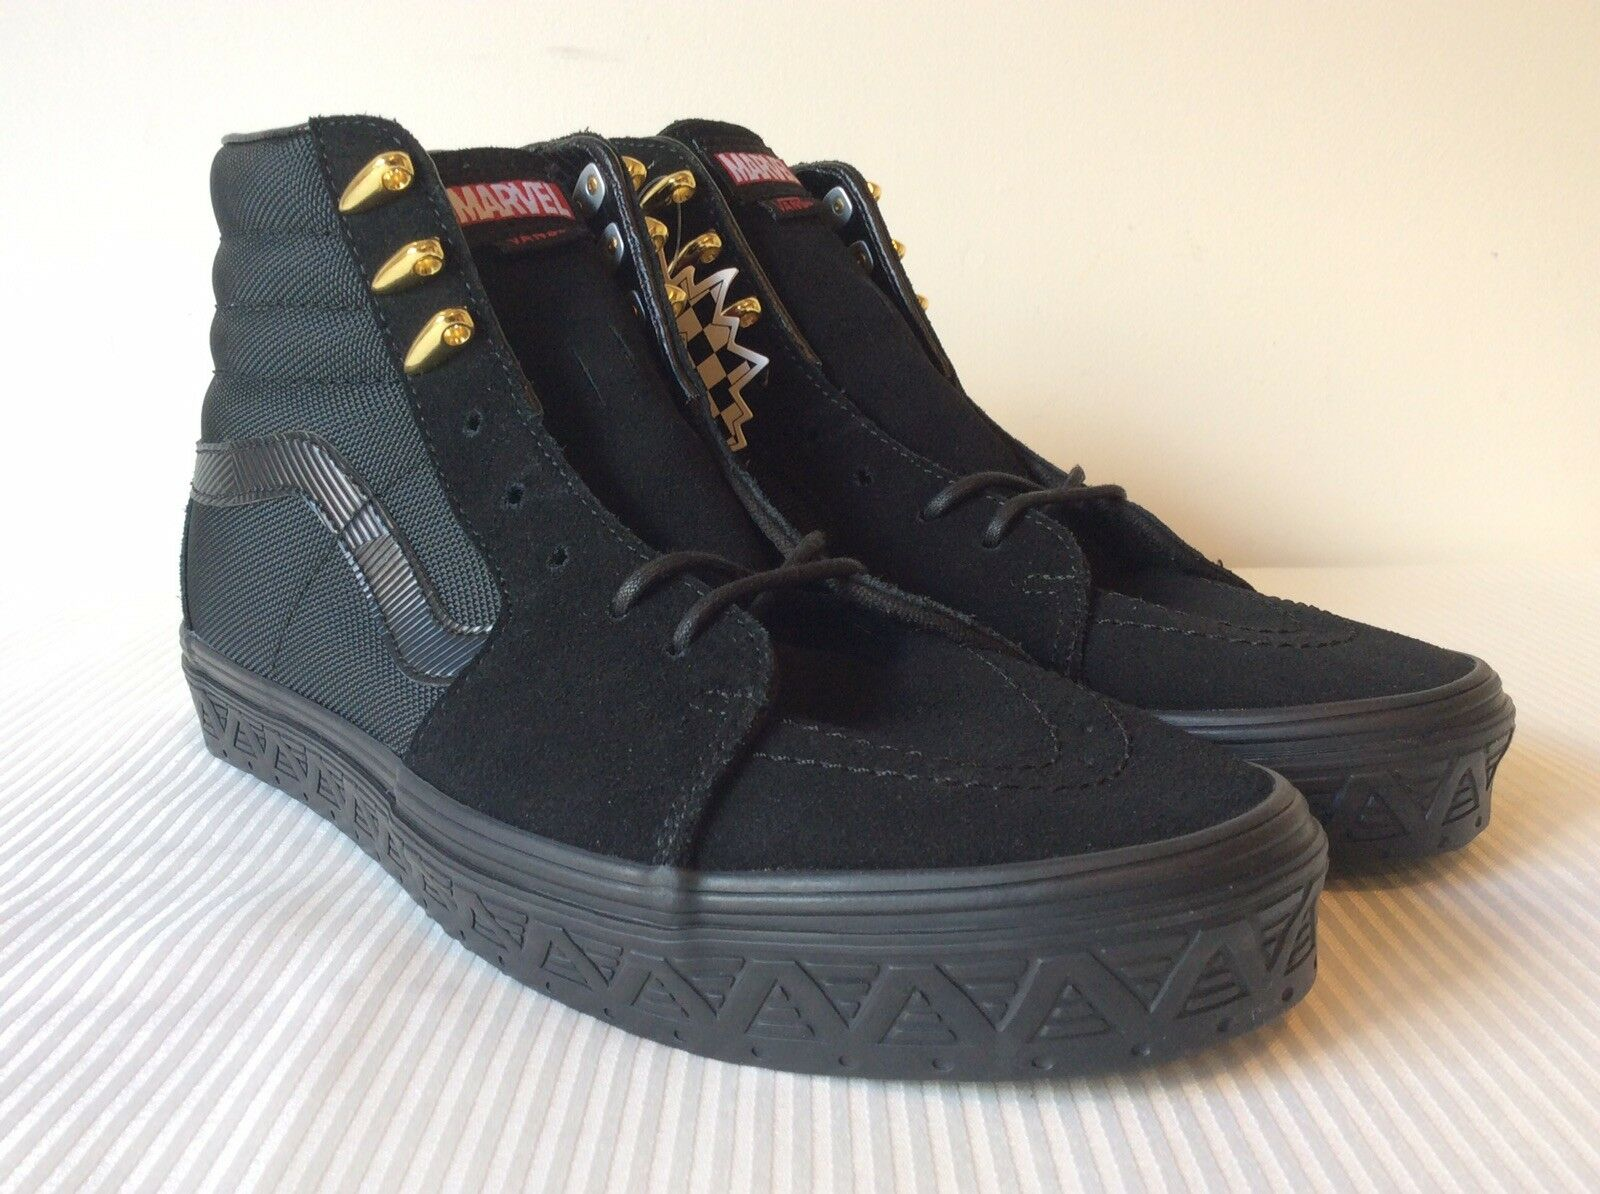 a02b4b4882f6fb VANS X Marvel Black Panther Sk8 Hi Limited Edition Avengers SNEAKERS ...